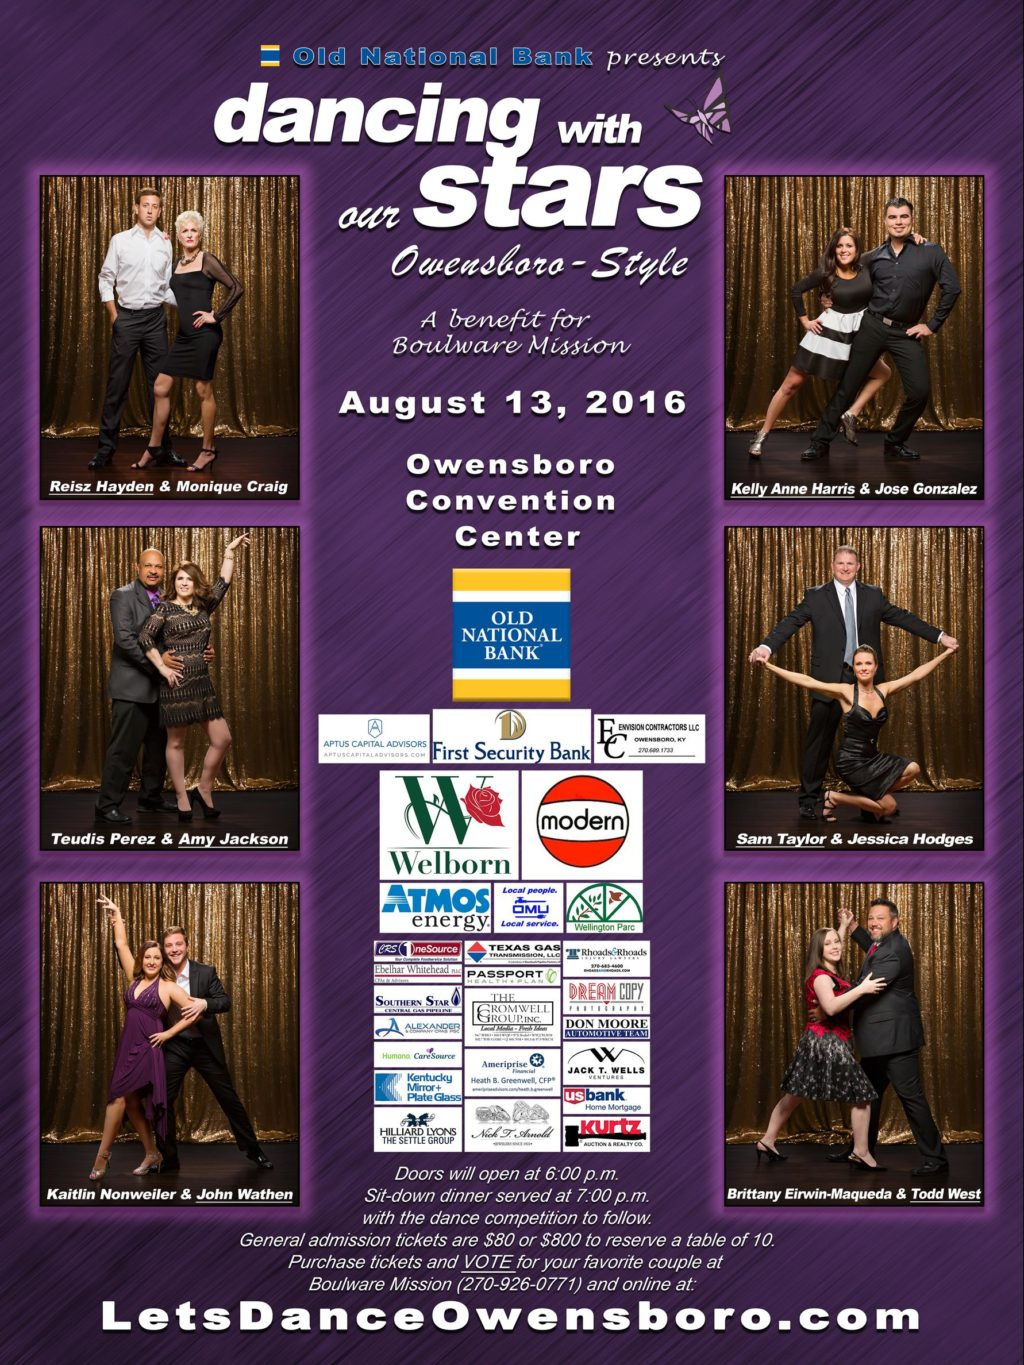 poster dancing with our stars